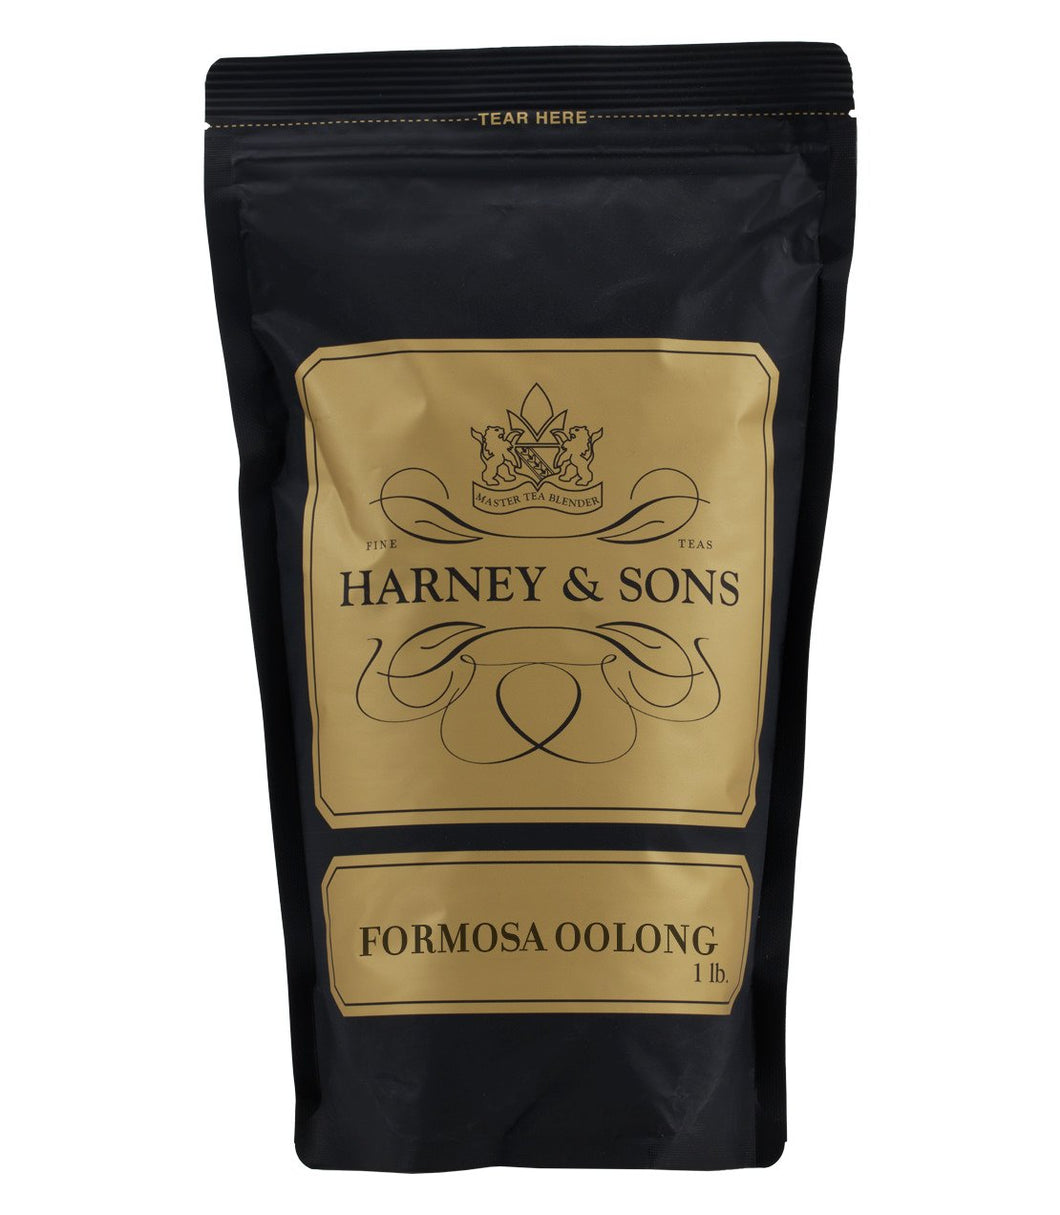 Harney & Sons - Formosa Oolong